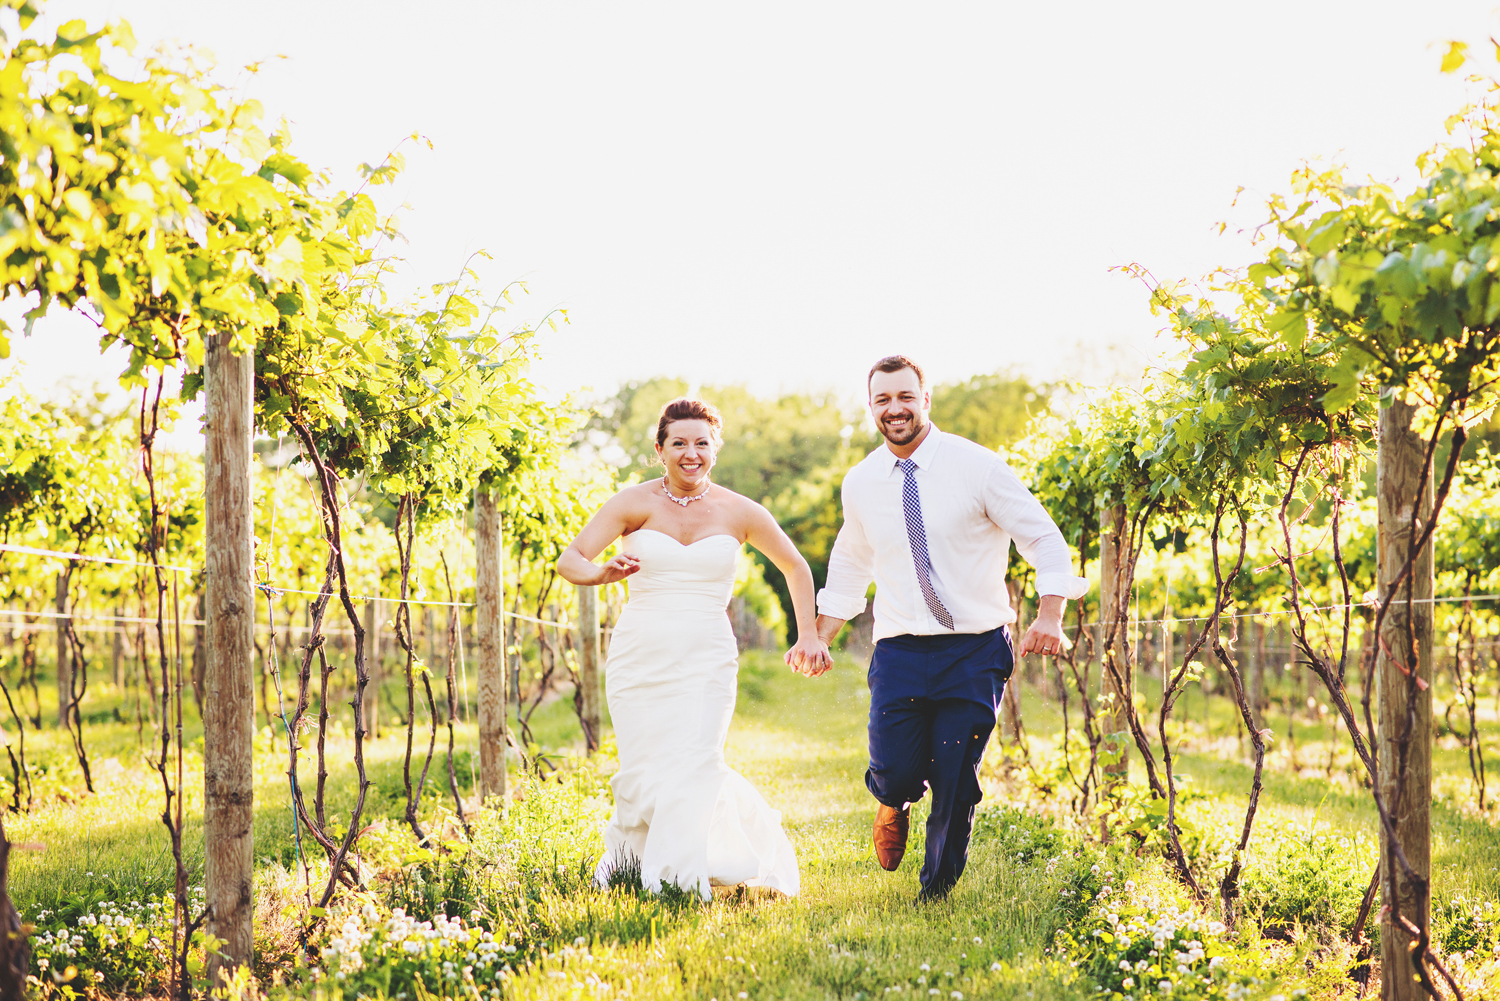 michigan_vineyard_wedding_photographer_davetree_photography_333.jpg